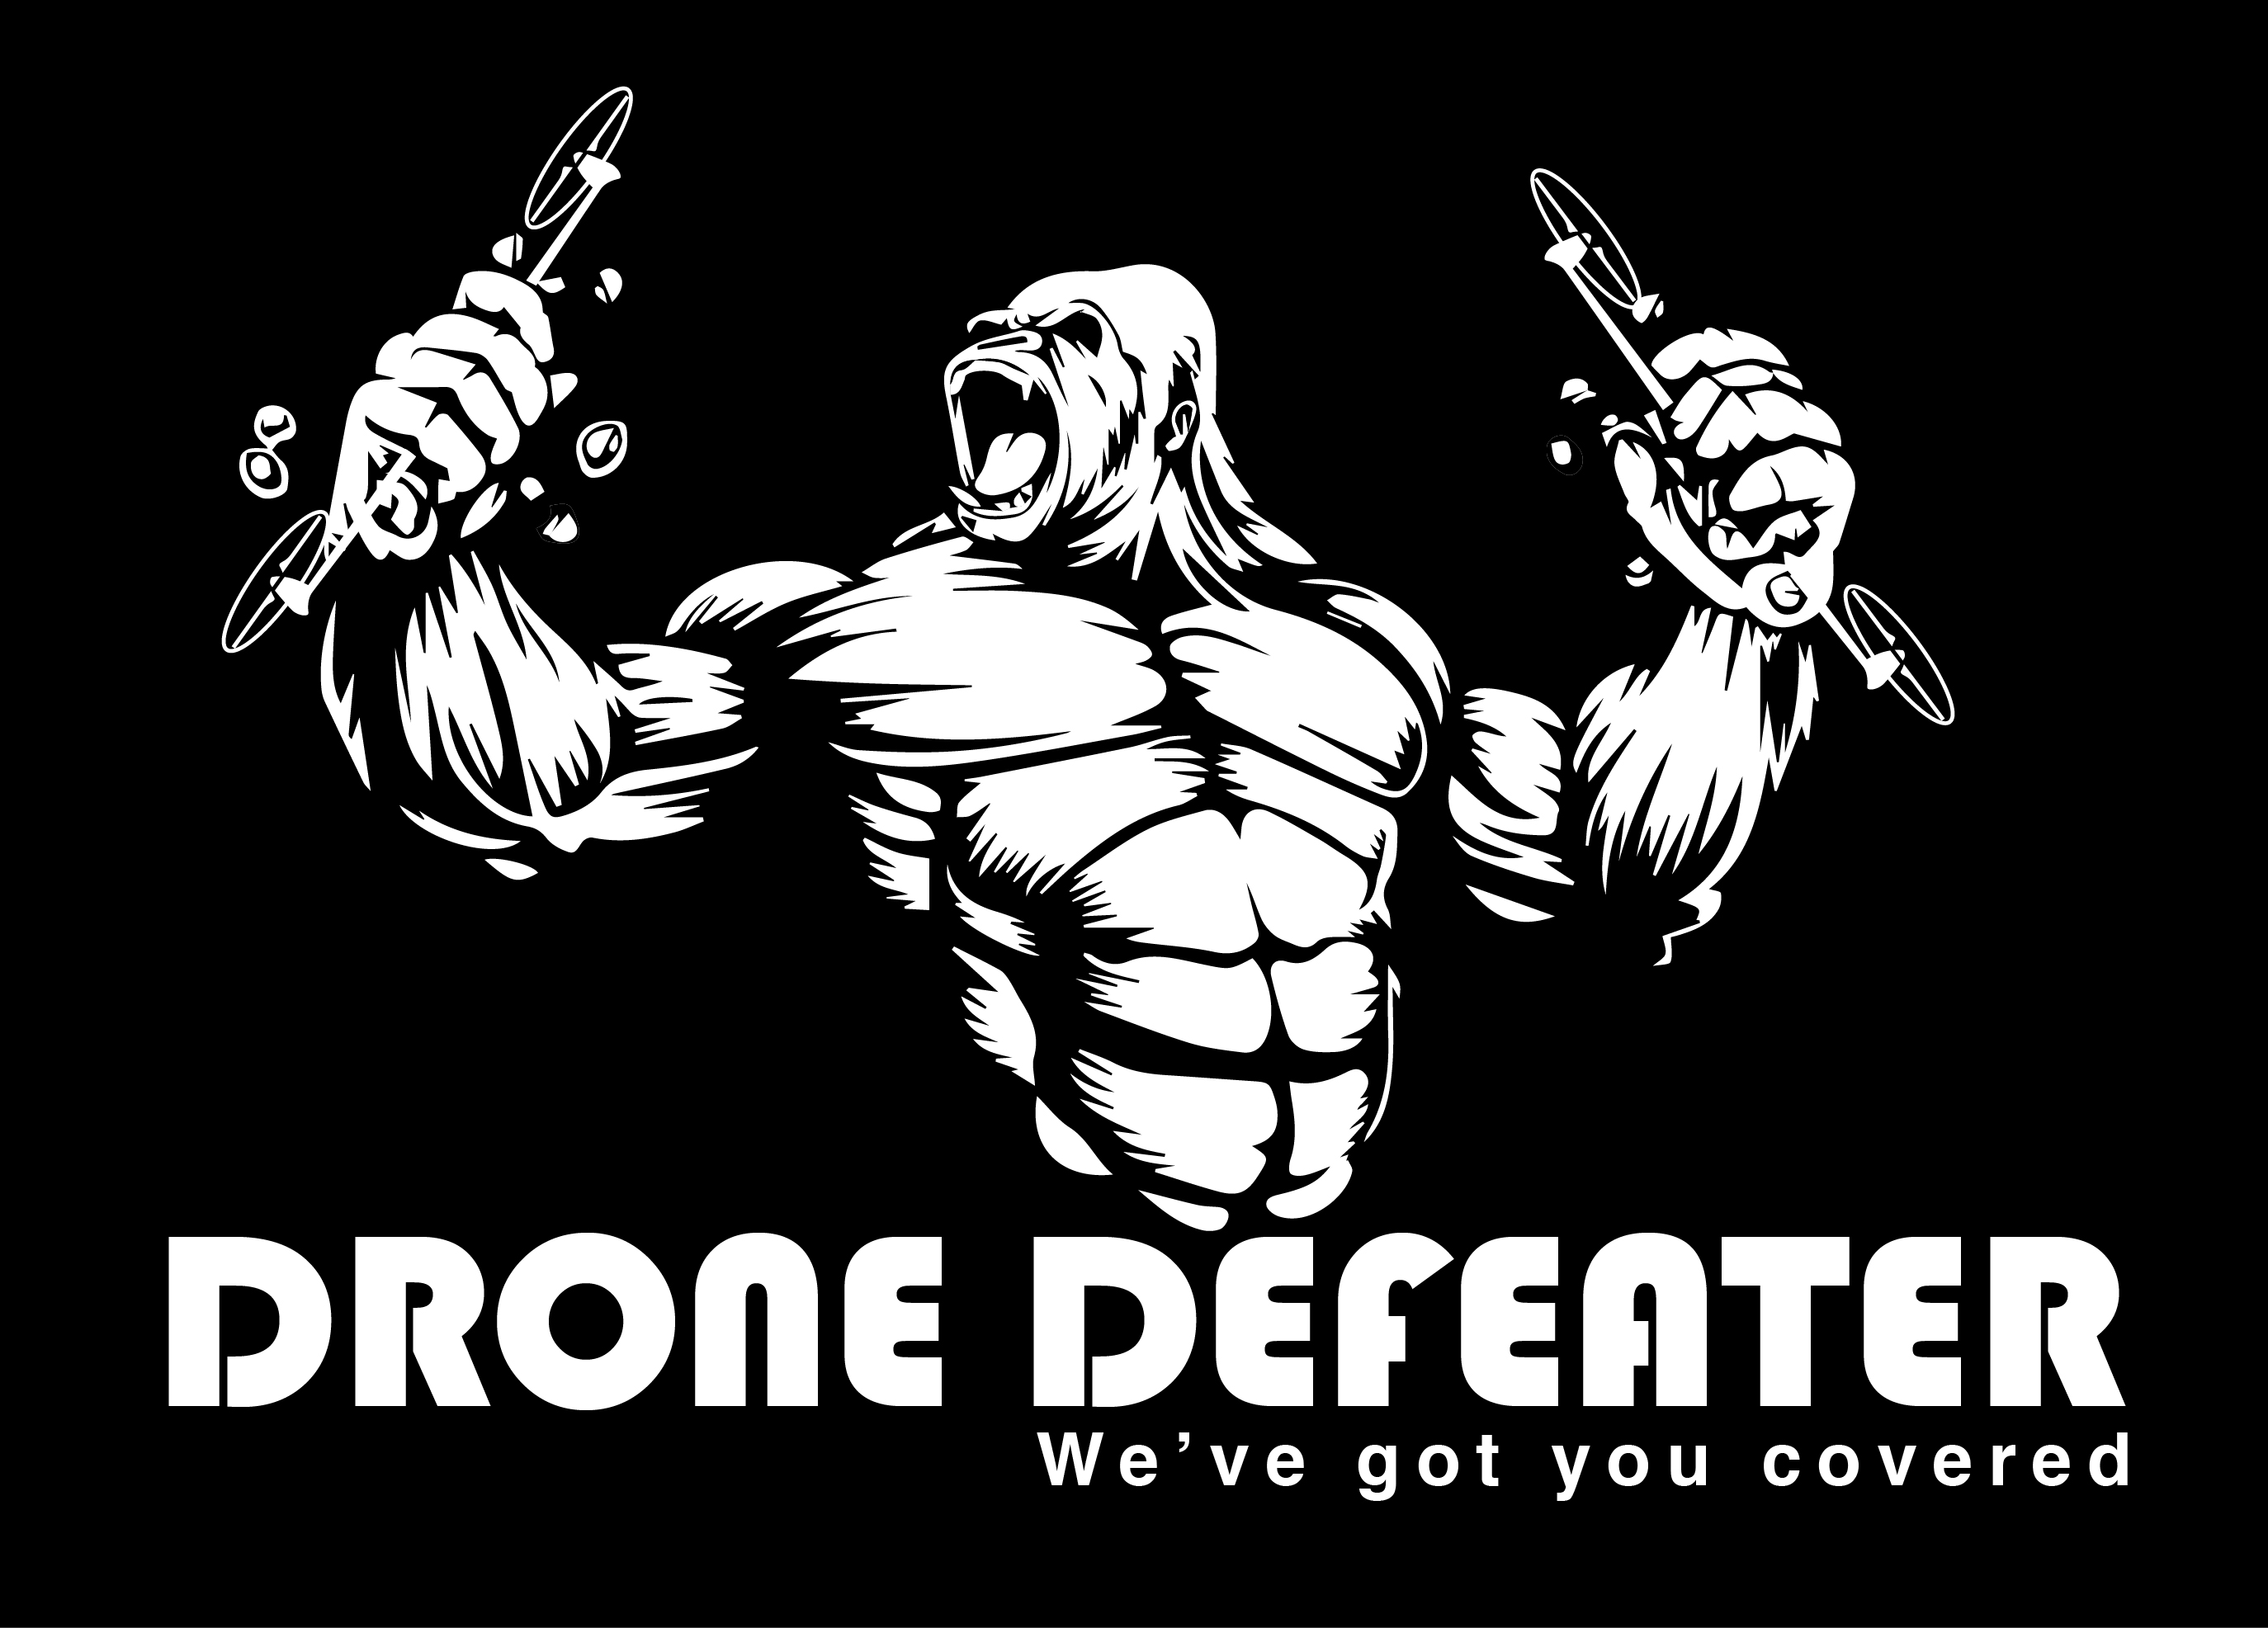 Logo Design by Rob King - Entry No. 34 in the Logo Design Contest Artistic Logo Design for Drone Defeater.